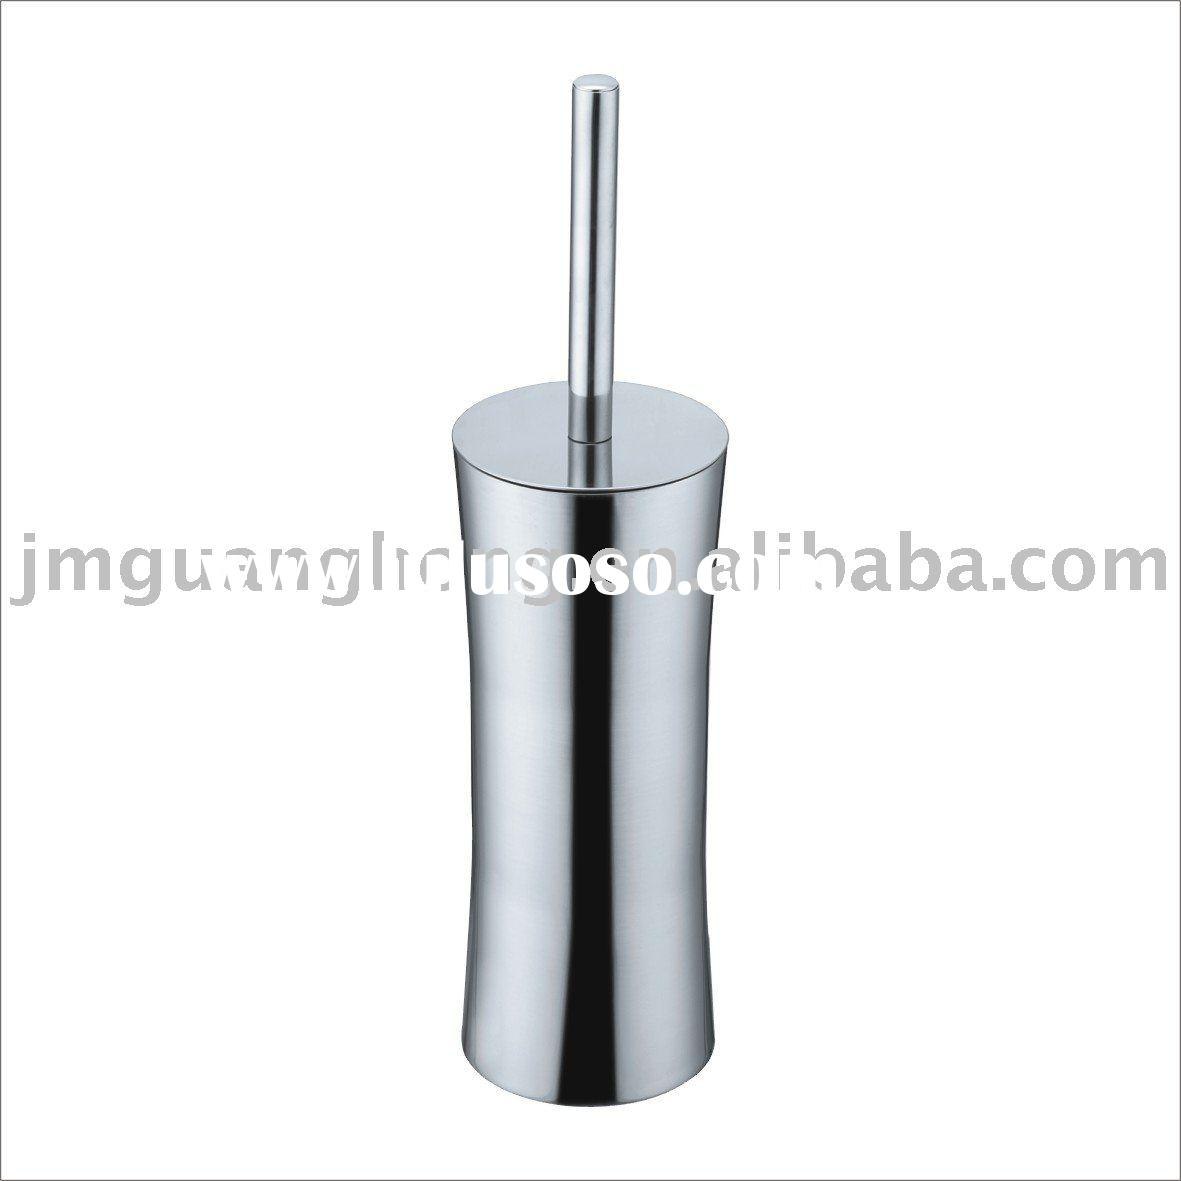 Stainless steel toilet brush set&holder